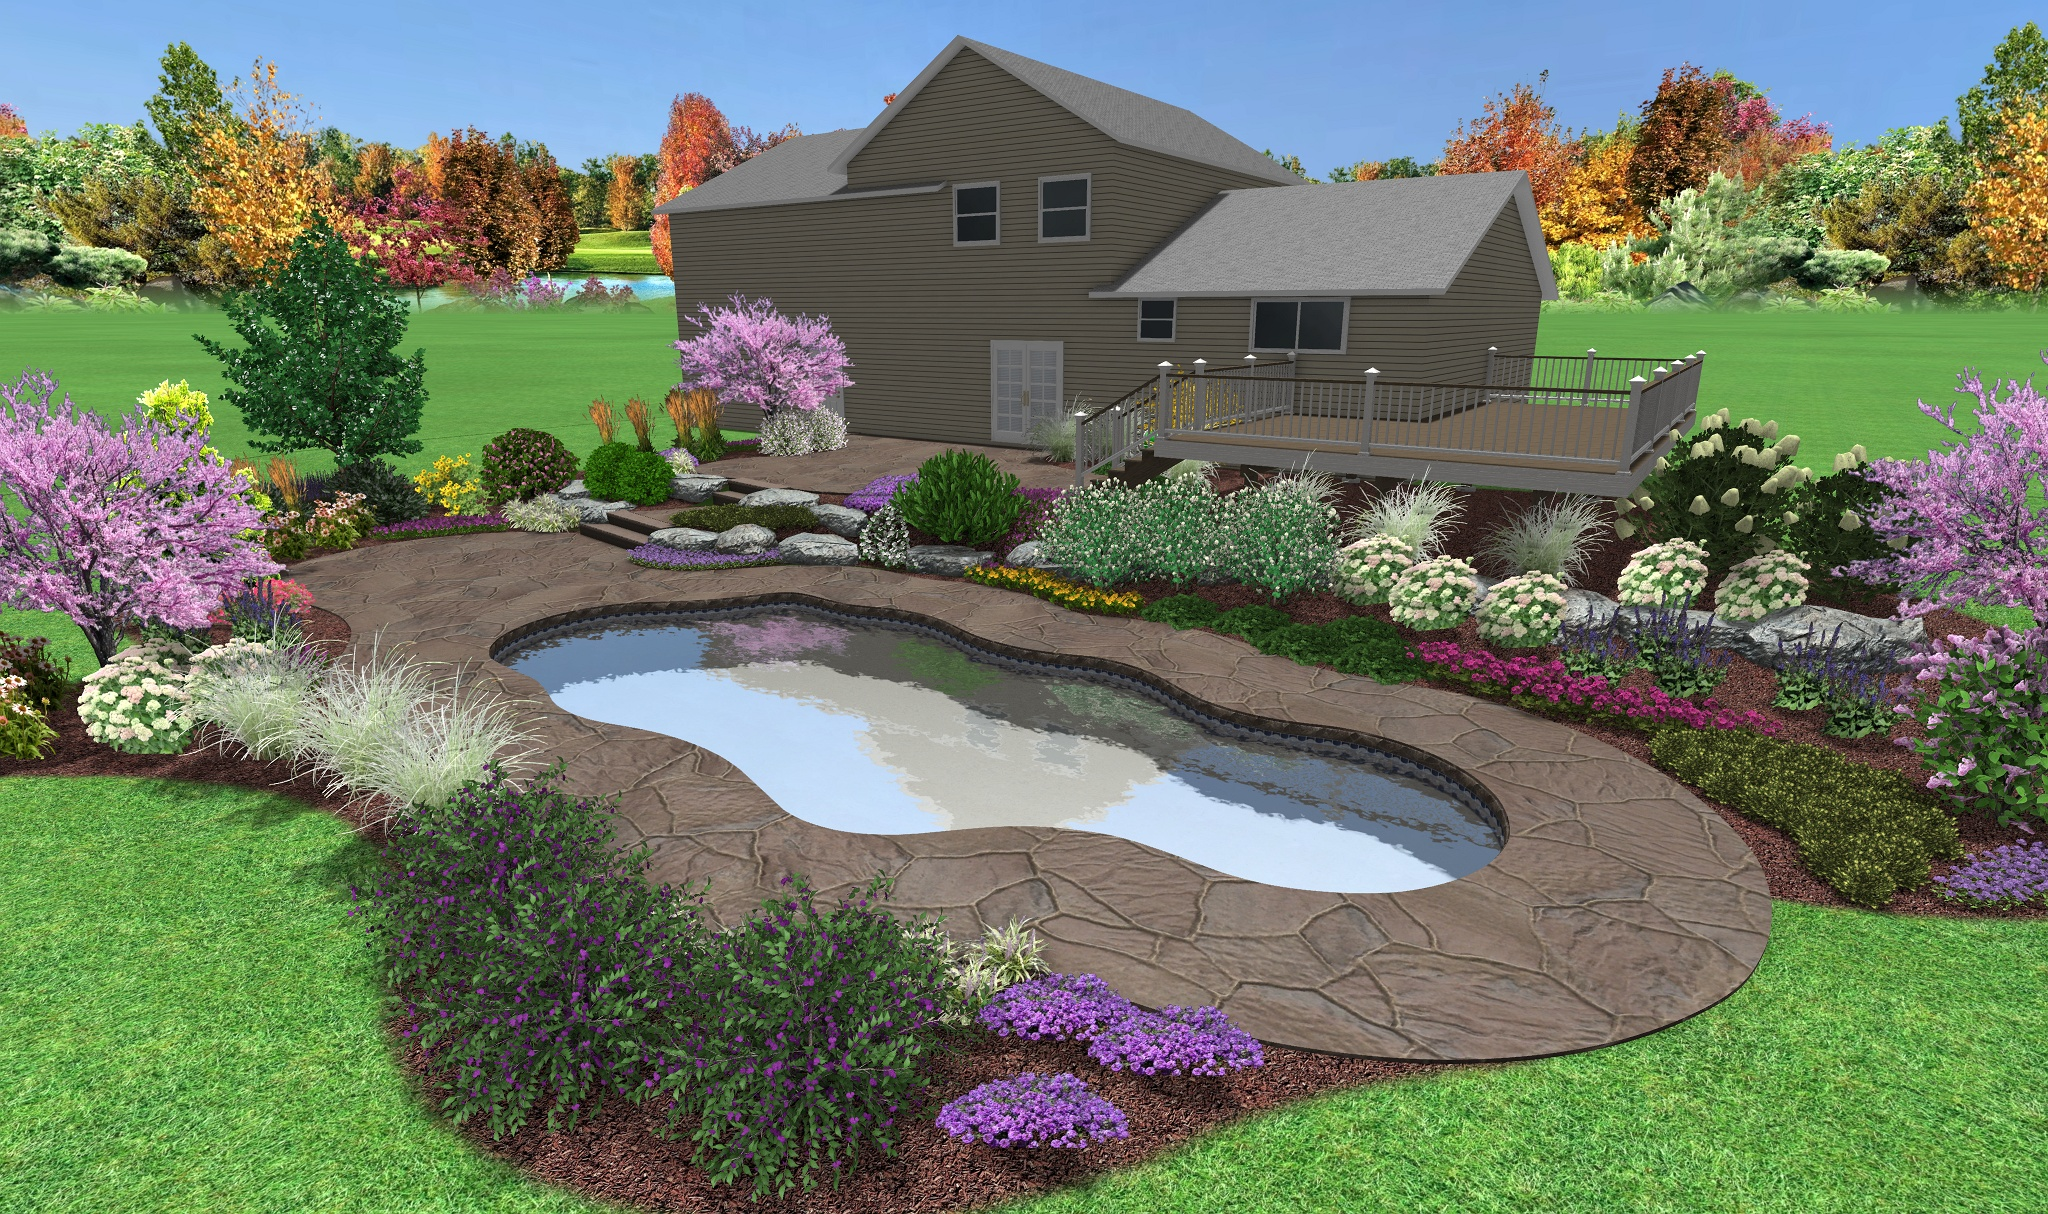 15 pool landscaping pictures hobbylobbys backyard swimming for Custom landscape design